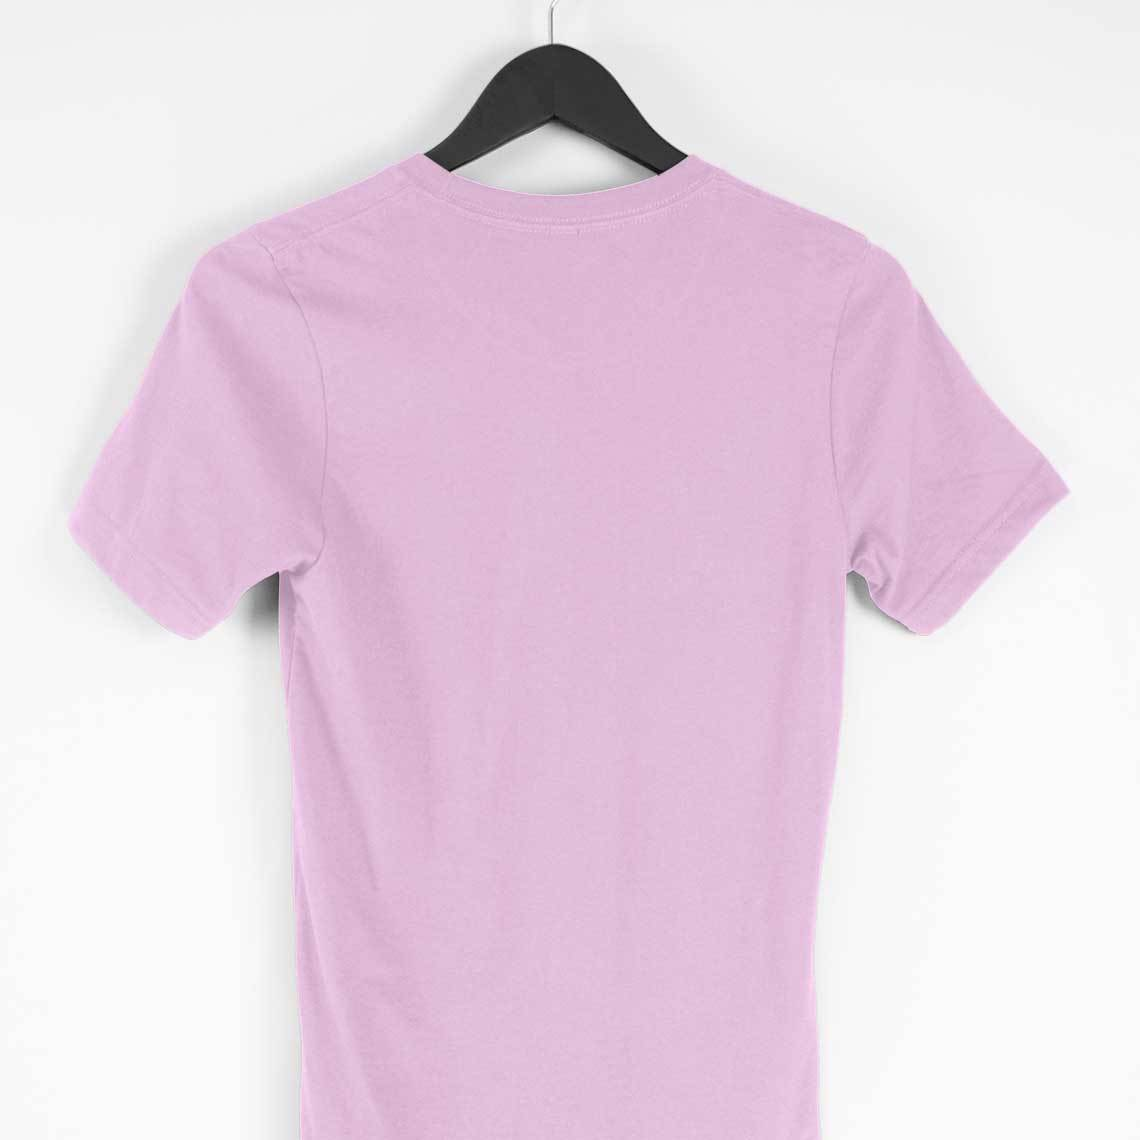 I do not care t-shirt (Pink)